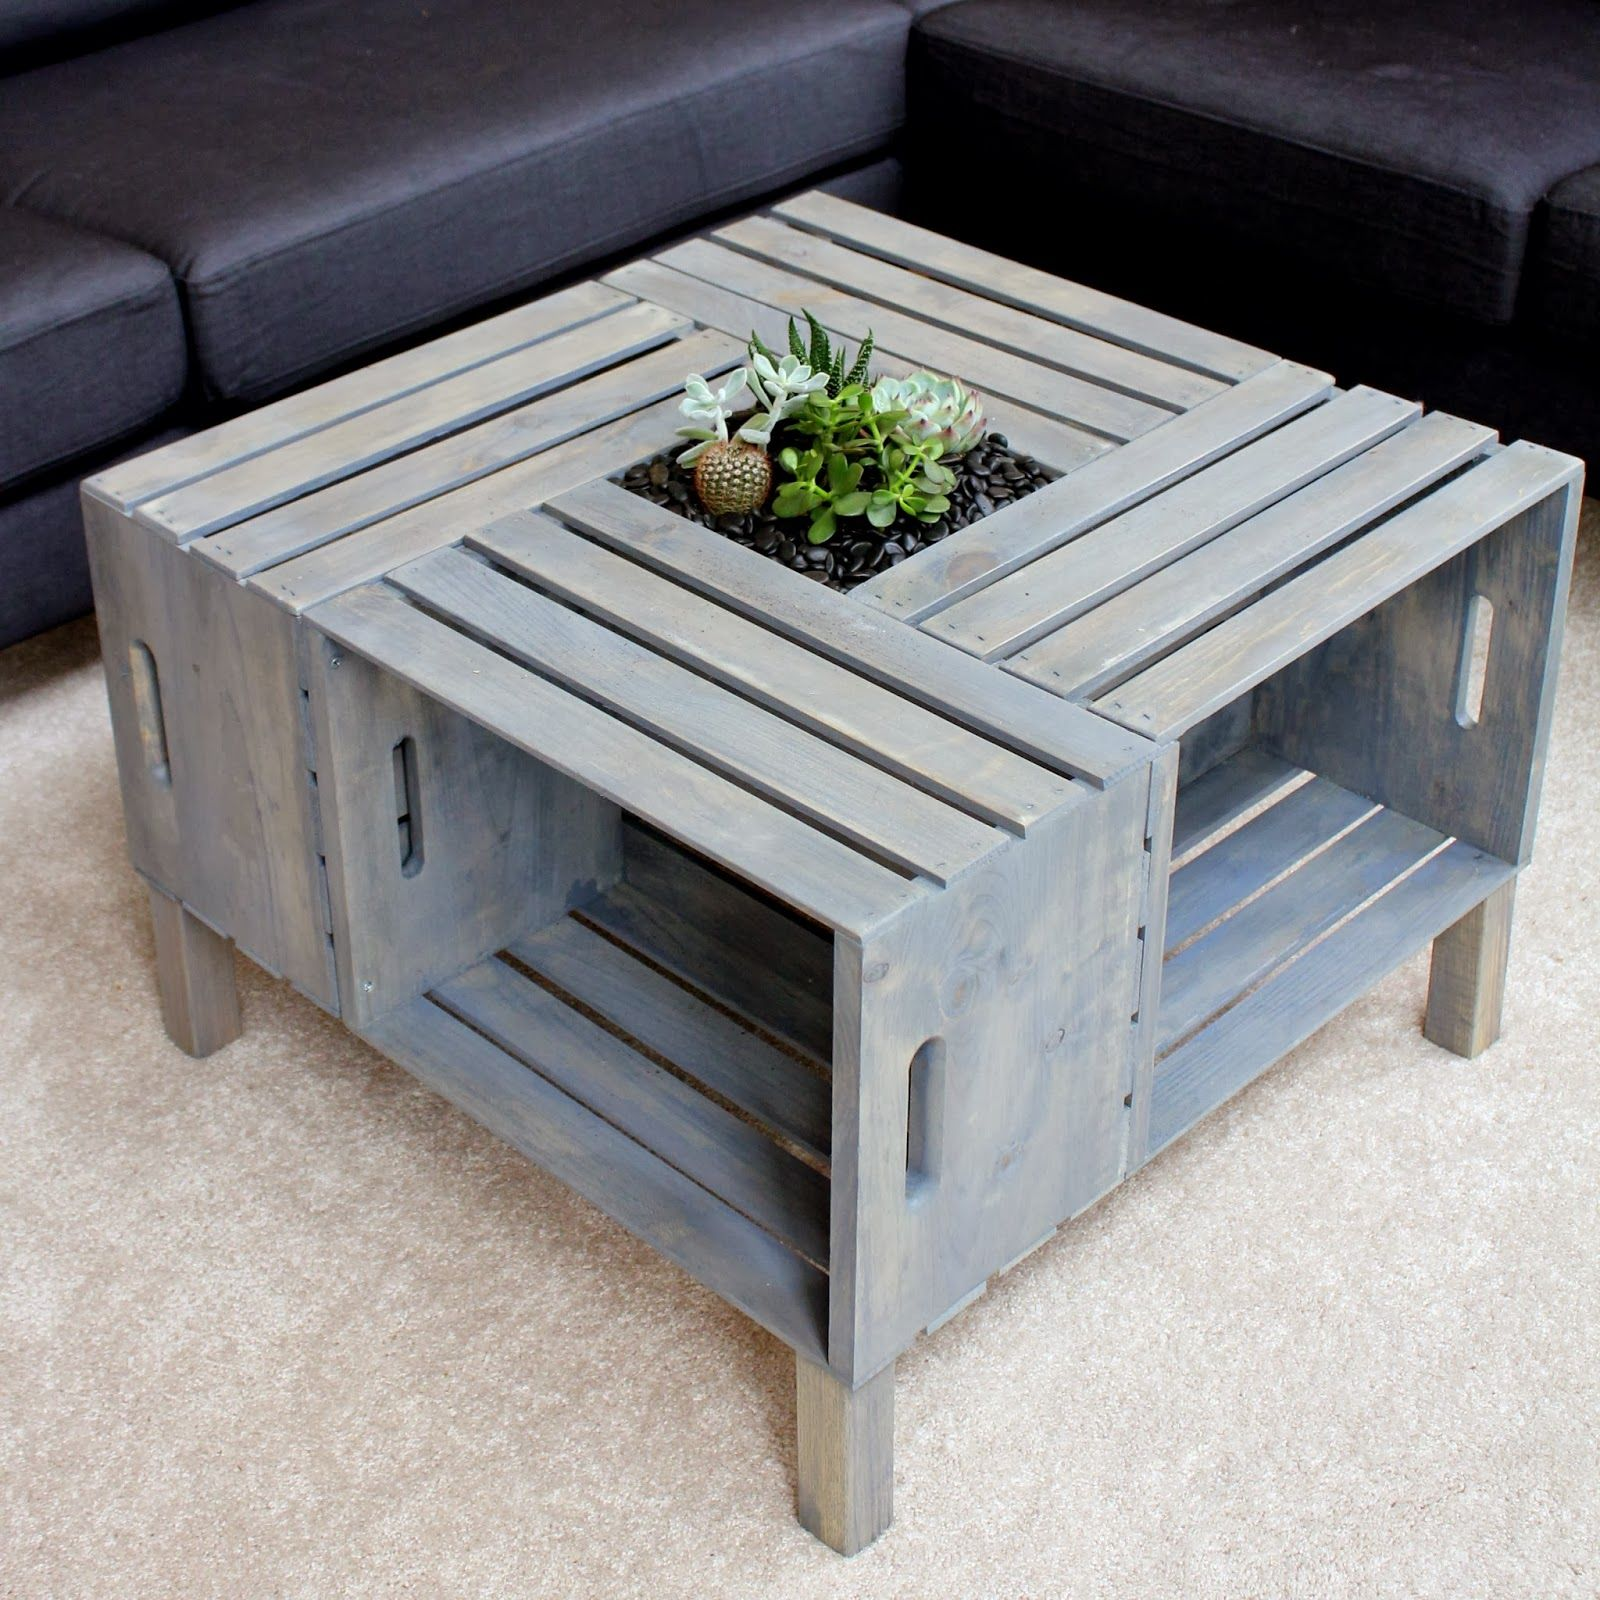 10 seriously cool coffee tables page 8 of 10 crates 10 seriously cool coffee tables page 8 of 10 crate coffee tablesdiy coffee tablediy geotapseo Images